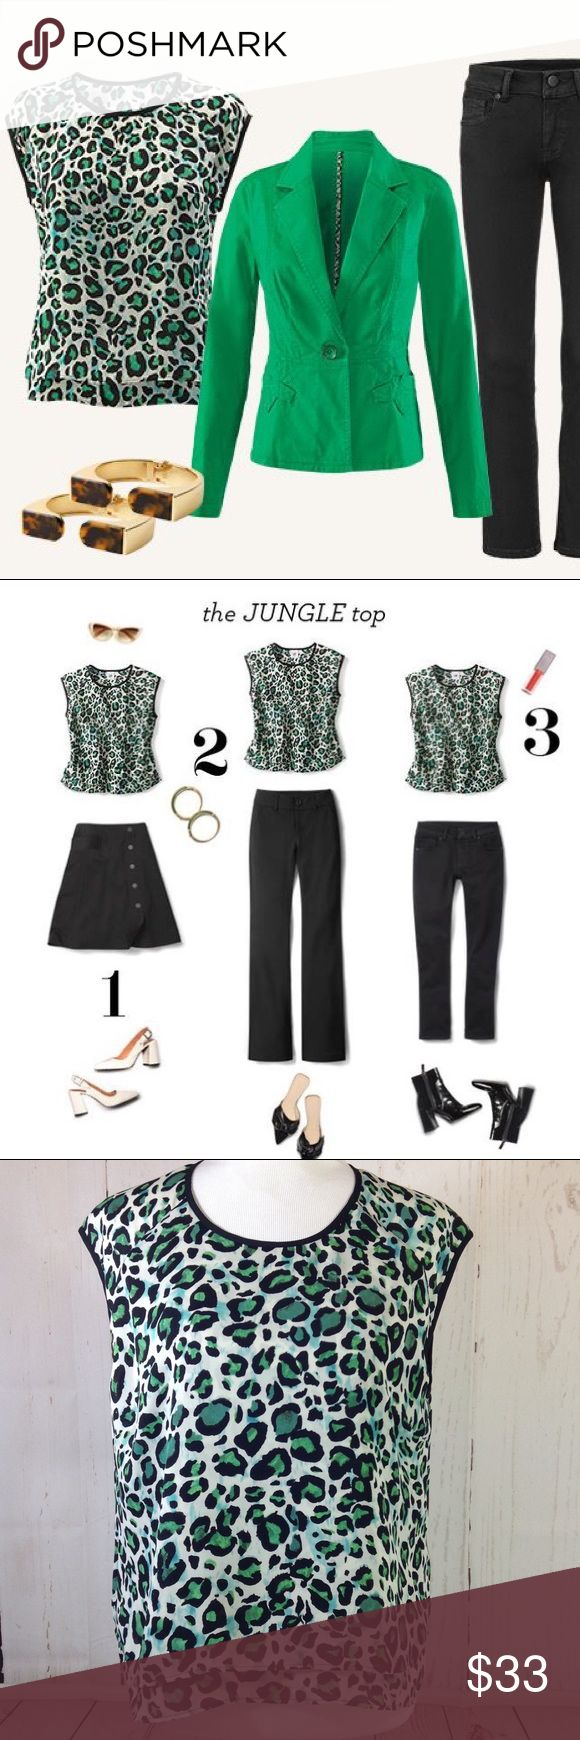 """Cabo Green #3260 Jungle Top Size Medium CAbi #3260 Jungle Top Size Medium Green Black Animal Print Sleeveless Tank Double layered Black piping Shown on a medium size mannequin  Approximate flat measurements:  Chest: 20.5"""" Shoulders: 19"""" Waist: 21"""" Length: 24.5"""" CAbi Tops Blouses"""